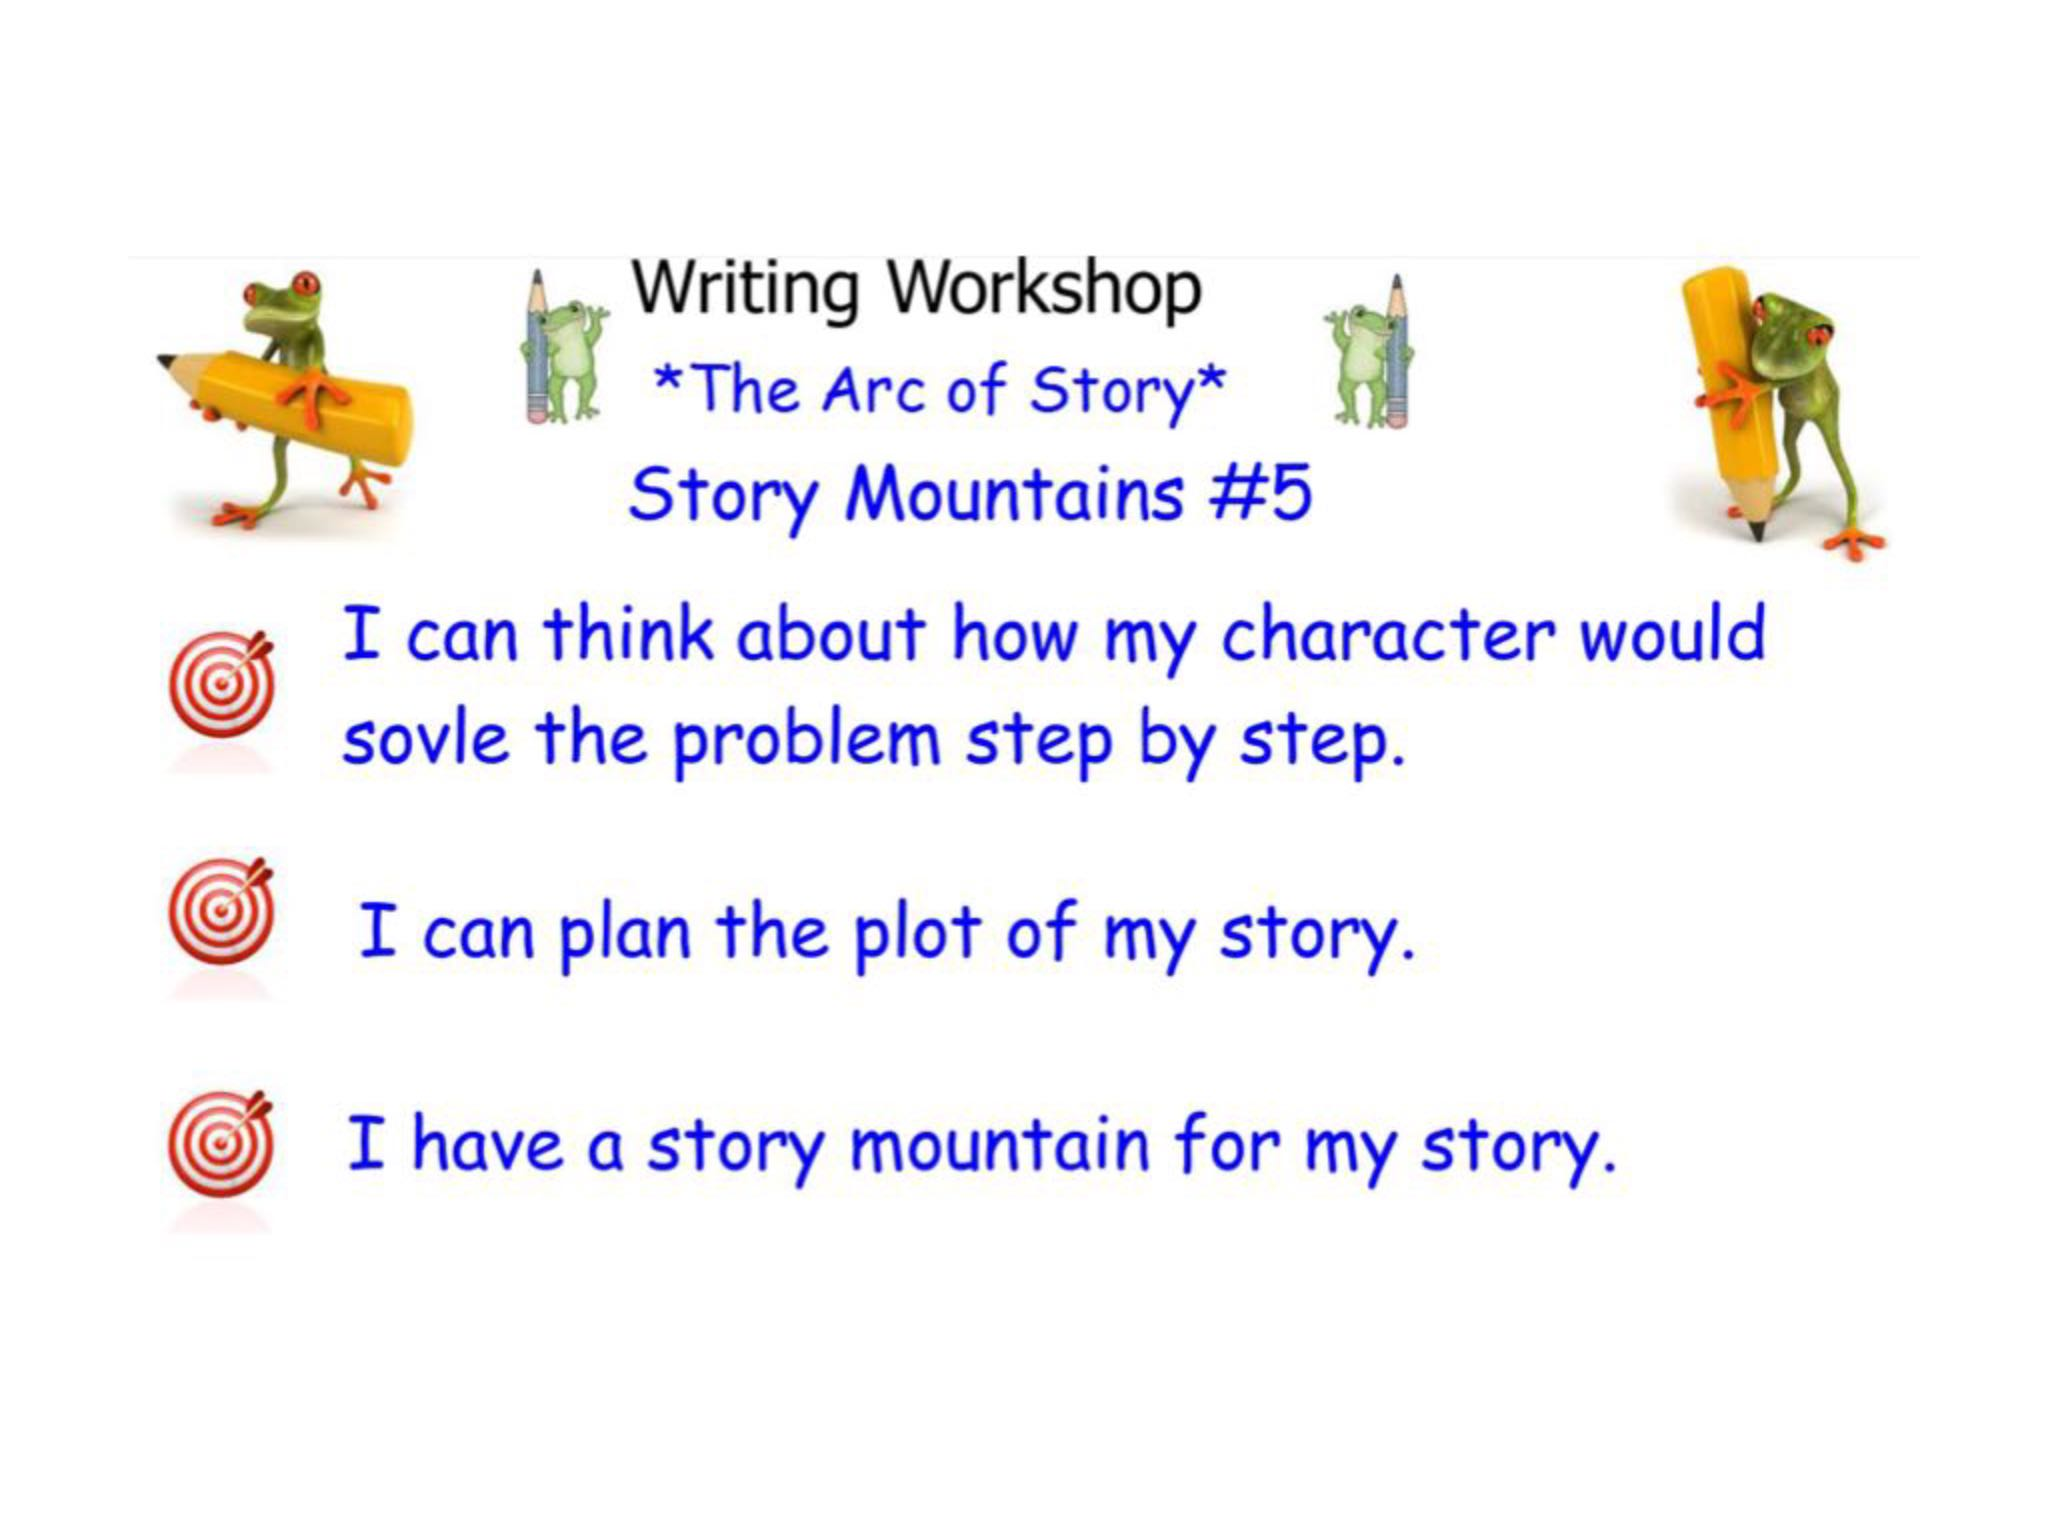 Plan the plot of your story step by step!